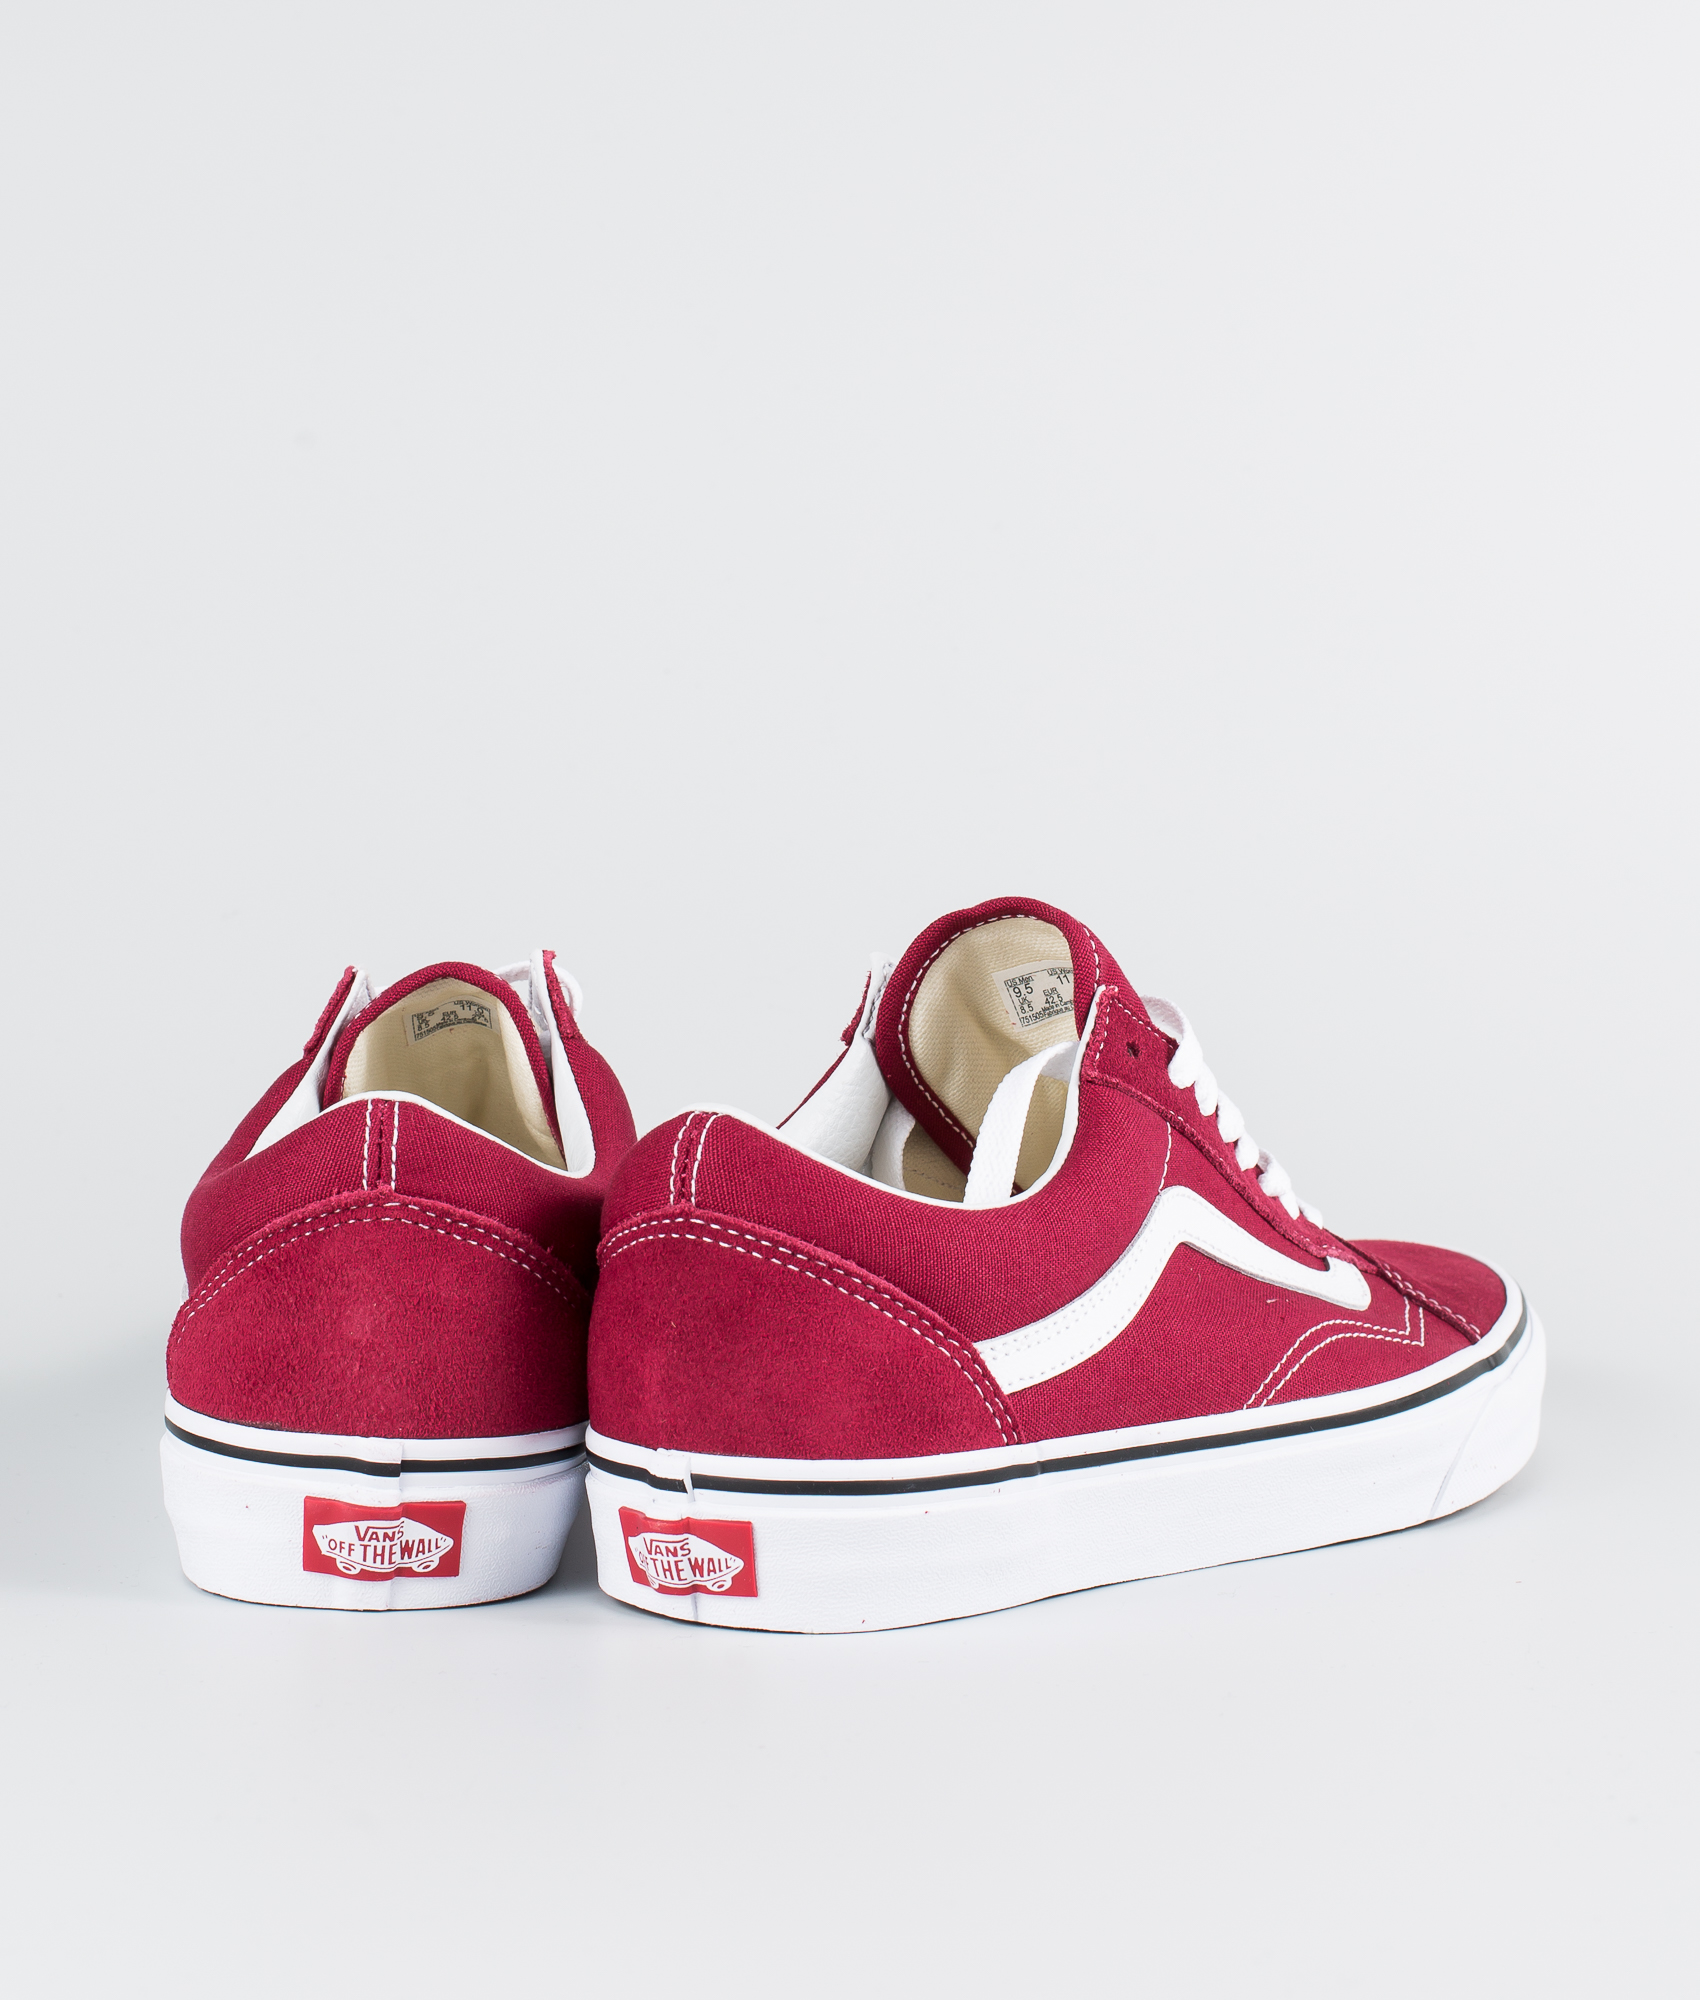 Old White Rumba Skool Redtrue Vans it Ridestore Scarpe hCtxQdsr